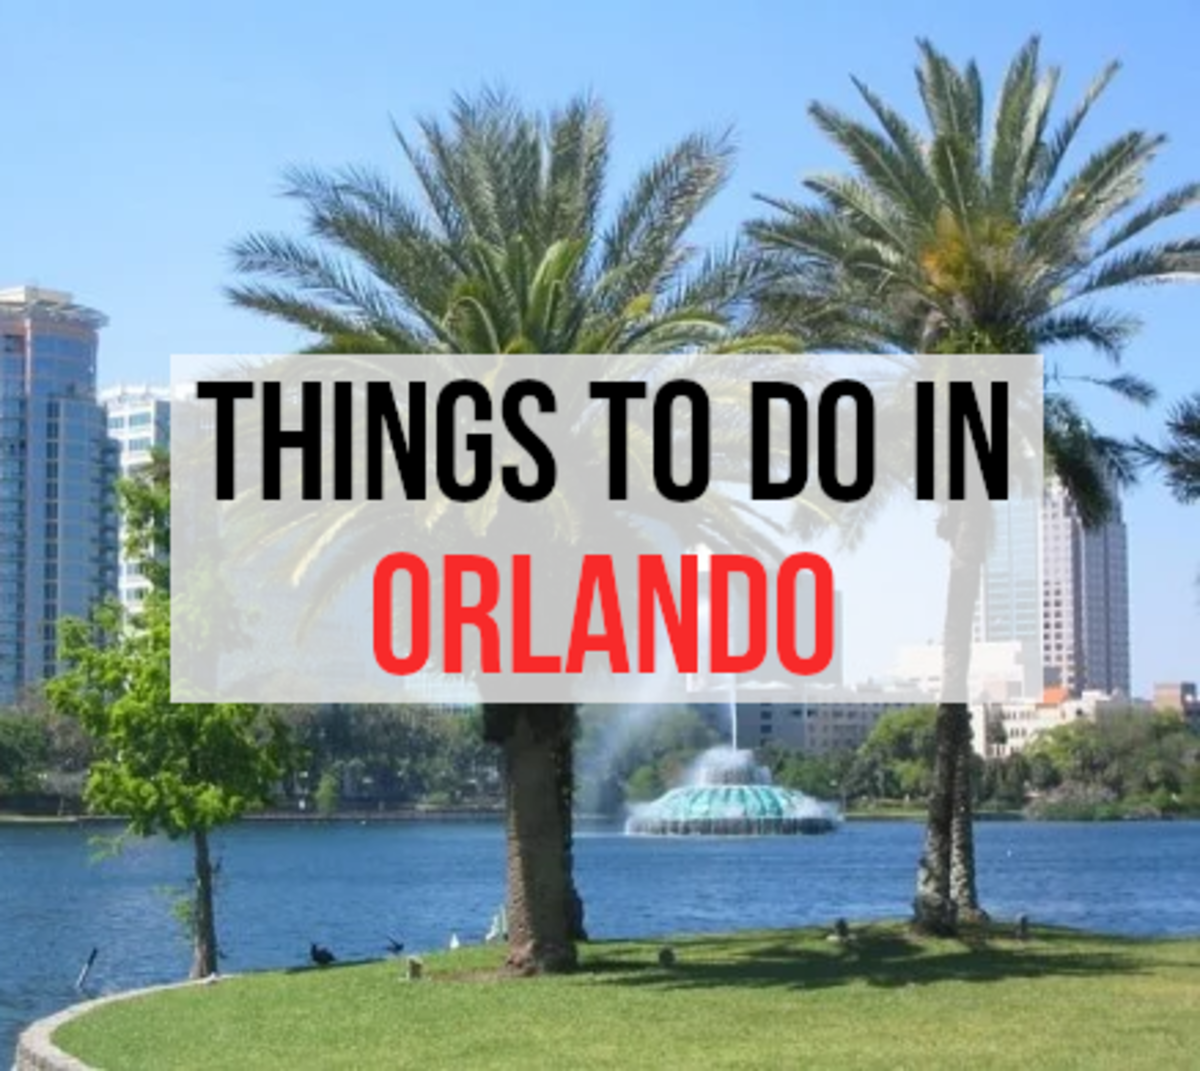 For my 12 things to do in Orlando, please read on...